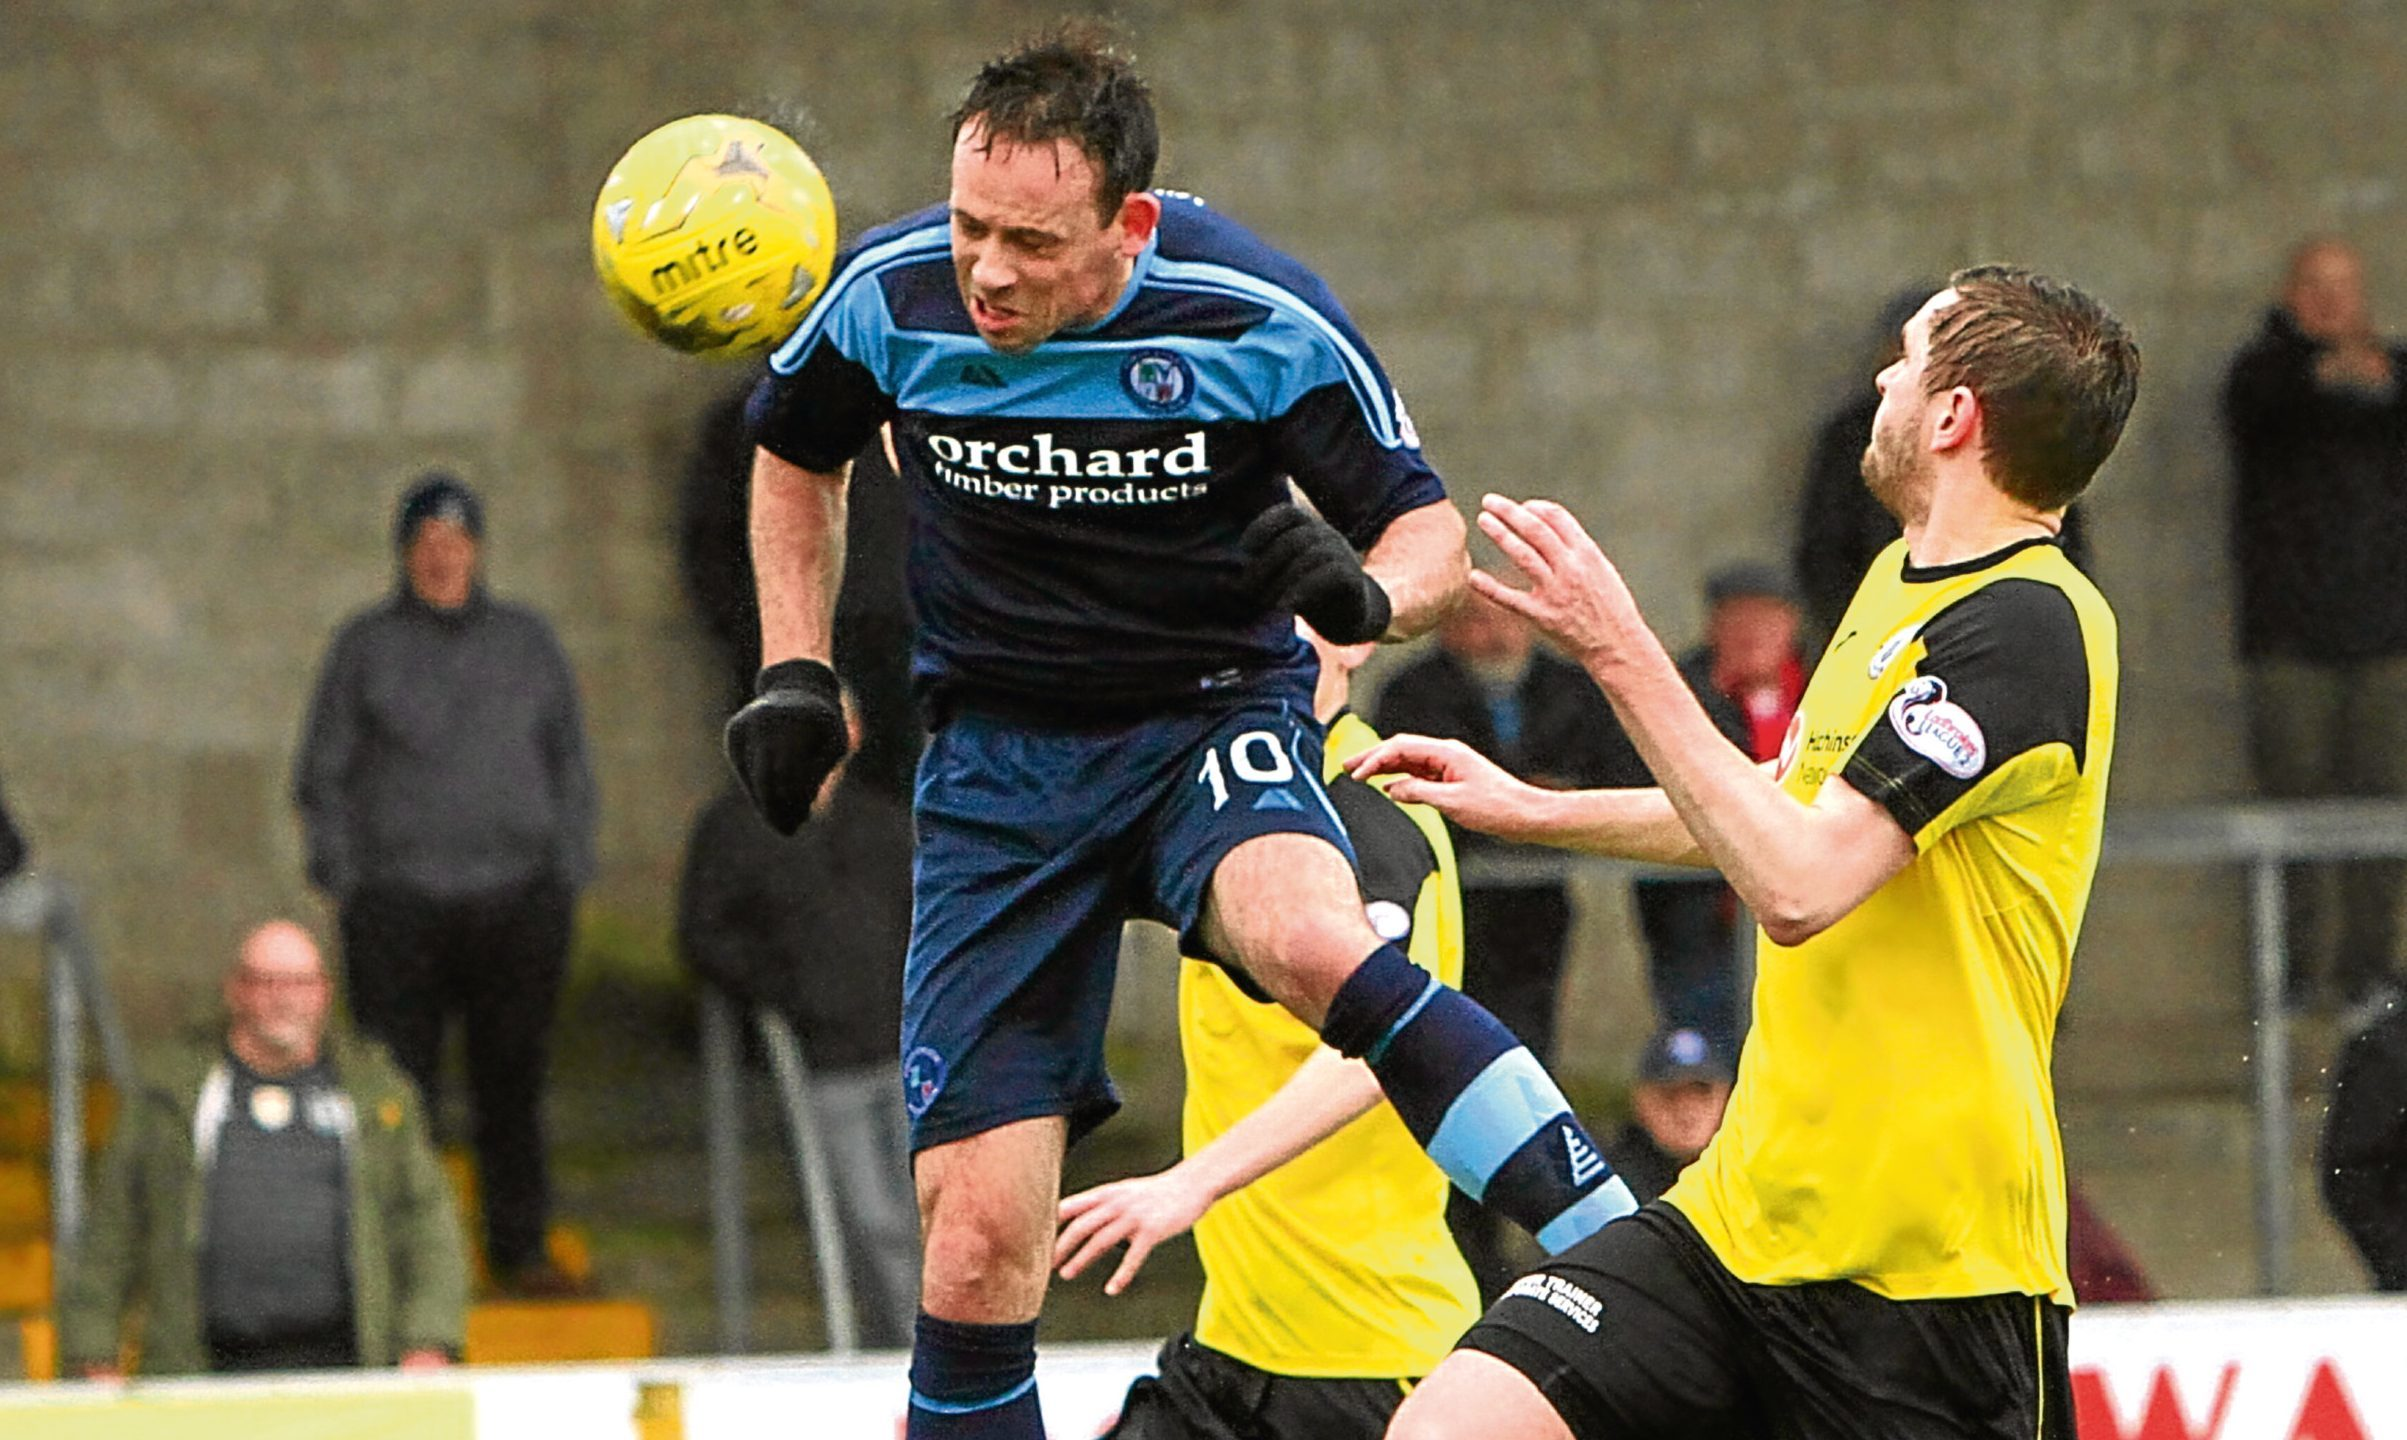 Jim Lister heads for goal to make it 1-0 to Forfar.